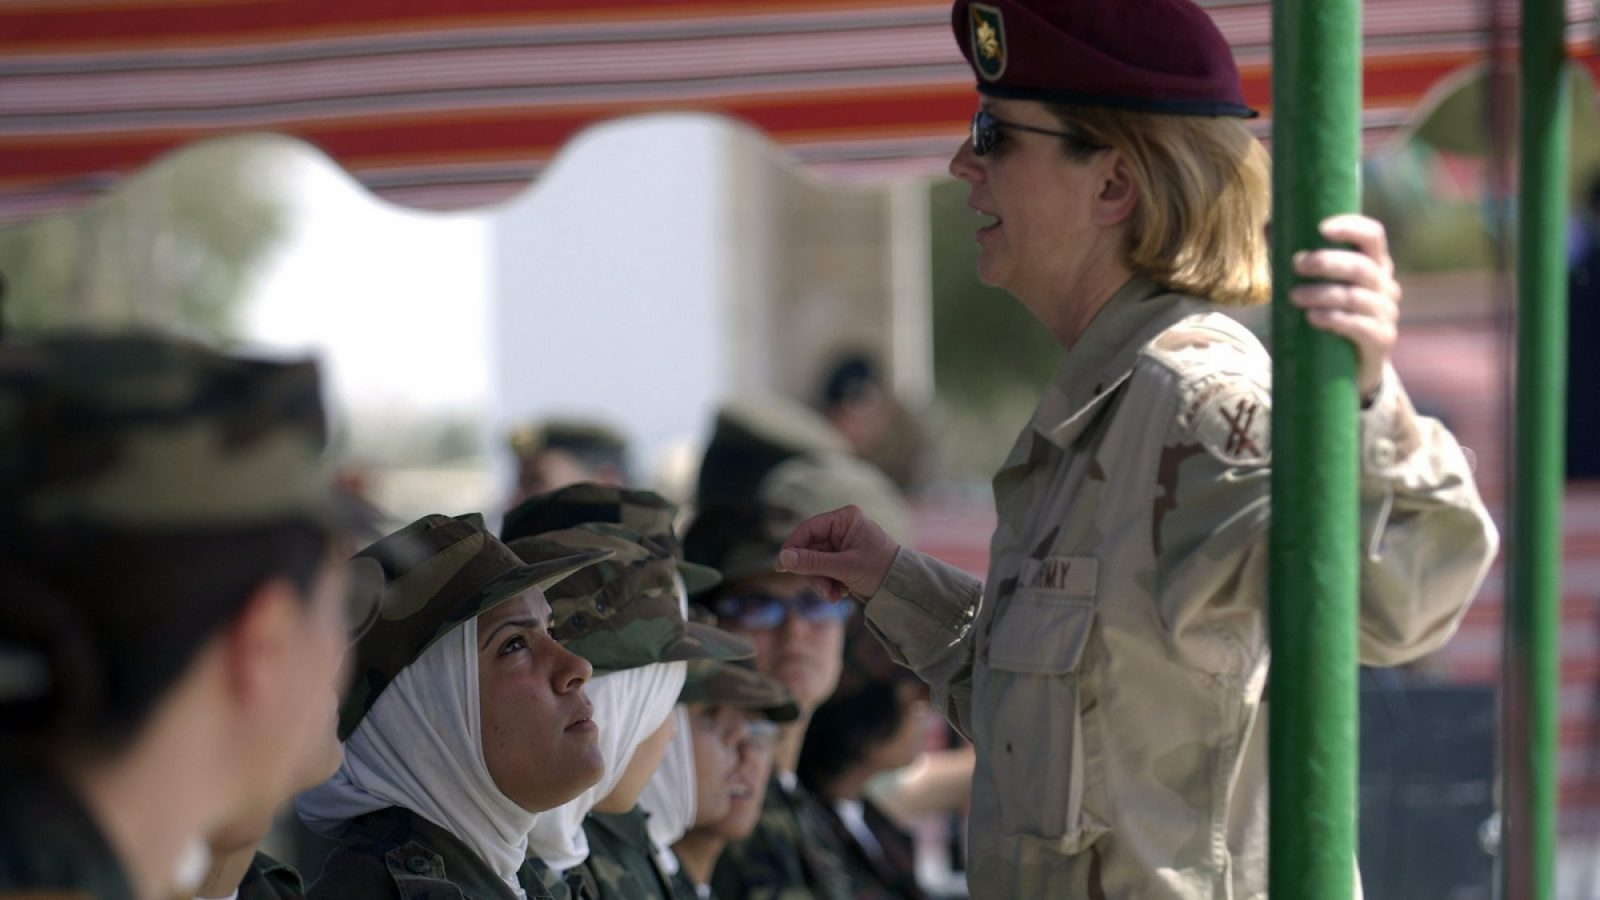 A woman in a green U.S. Army uniform speaks to a group of Iraqi army women